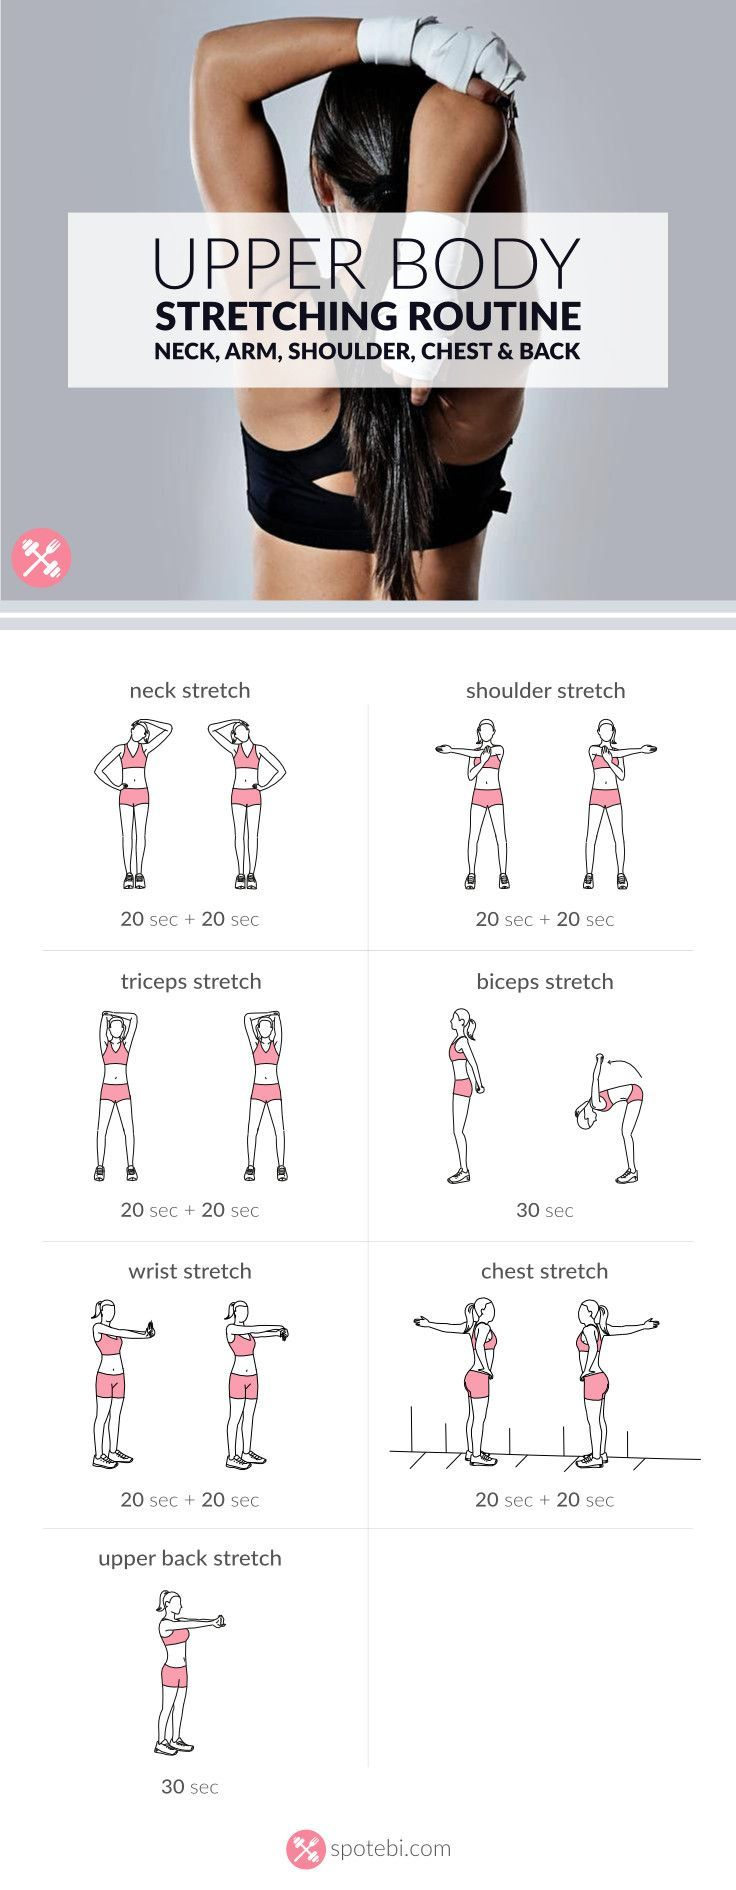 Stretch your neck, arm, shoulder, chest and back with these upper body stretching exercises. A set of stretches to relax the body and improve range of motion.  http://www.spotebi.com/workout-routines/upper-body-stretching-exercises/